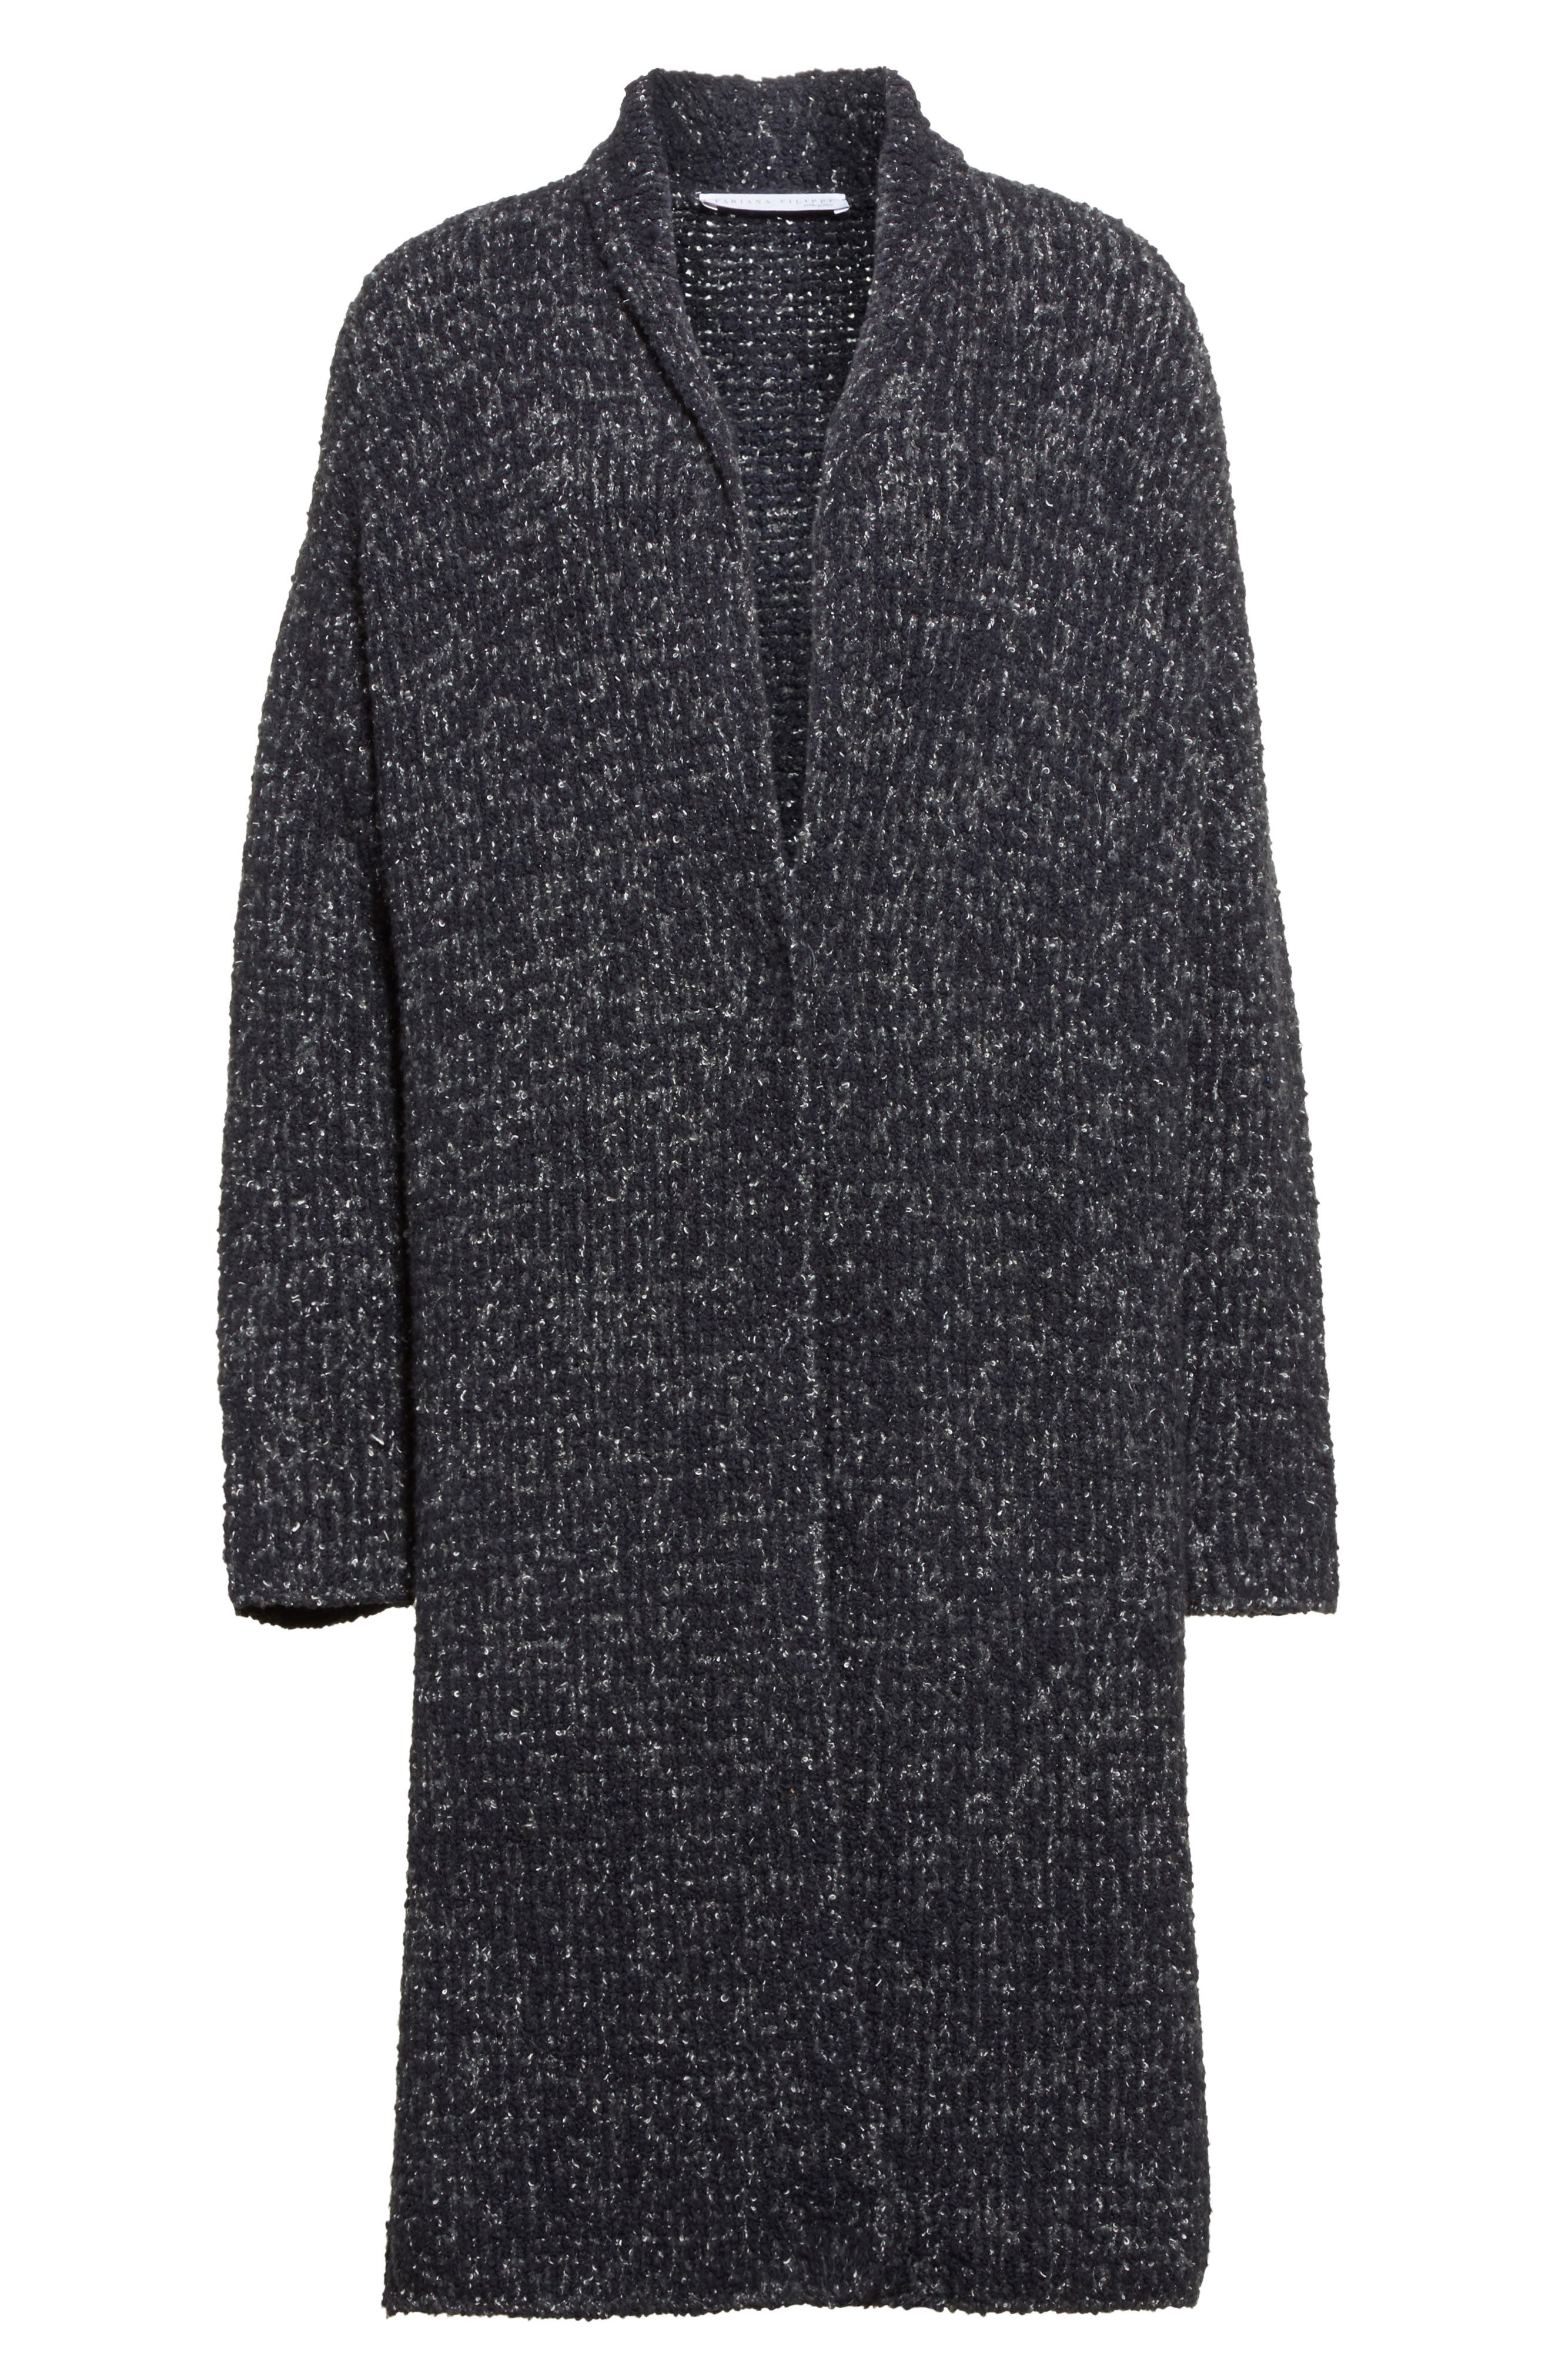 Wool Blend Bouclé Long Cardigan,                             Alternate thumbnail 4, color,                             Grey Multi